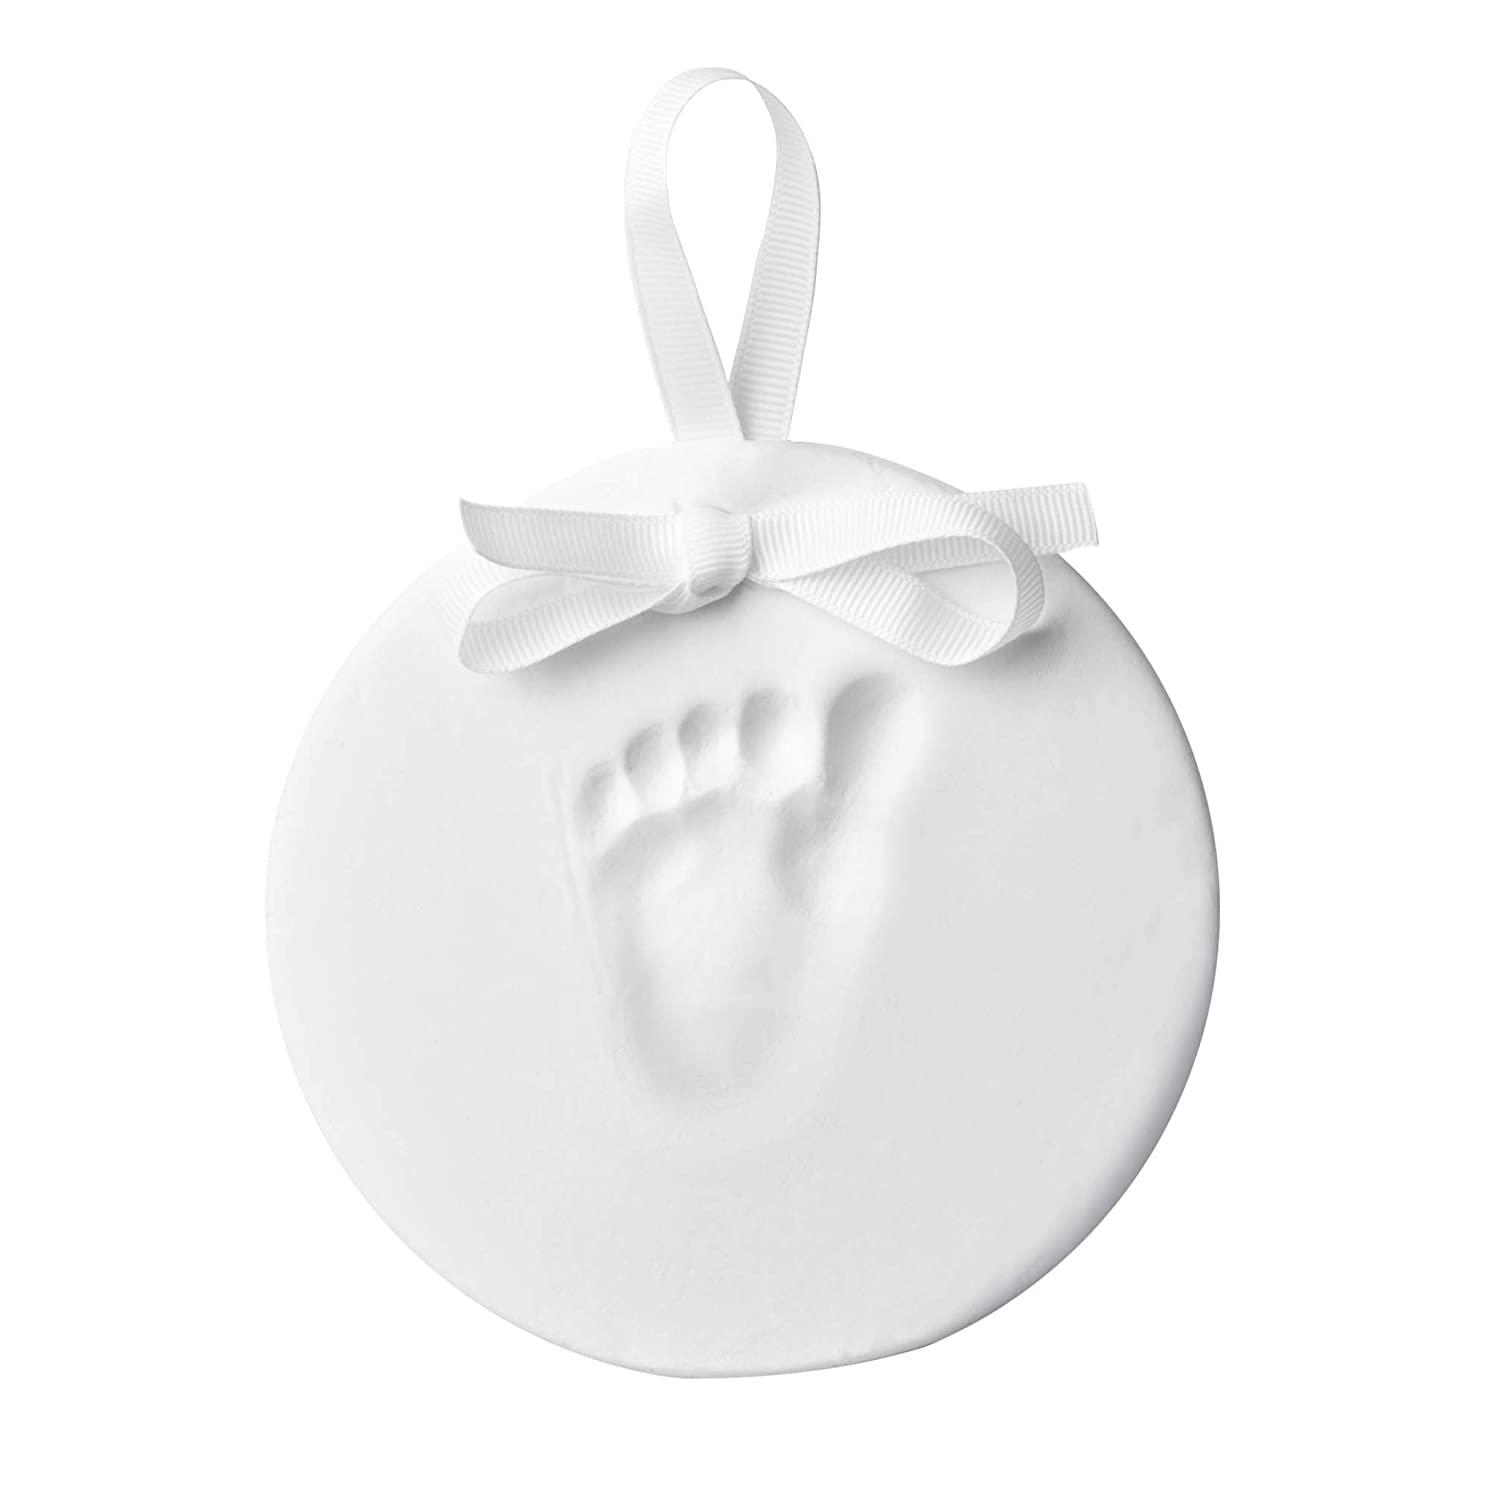 Little Pear Hanging Baby's Print Keepsake Ornament, Holiday Gift, Nursery Décor, Creative Baby Gift, or Addition to Baby Registry